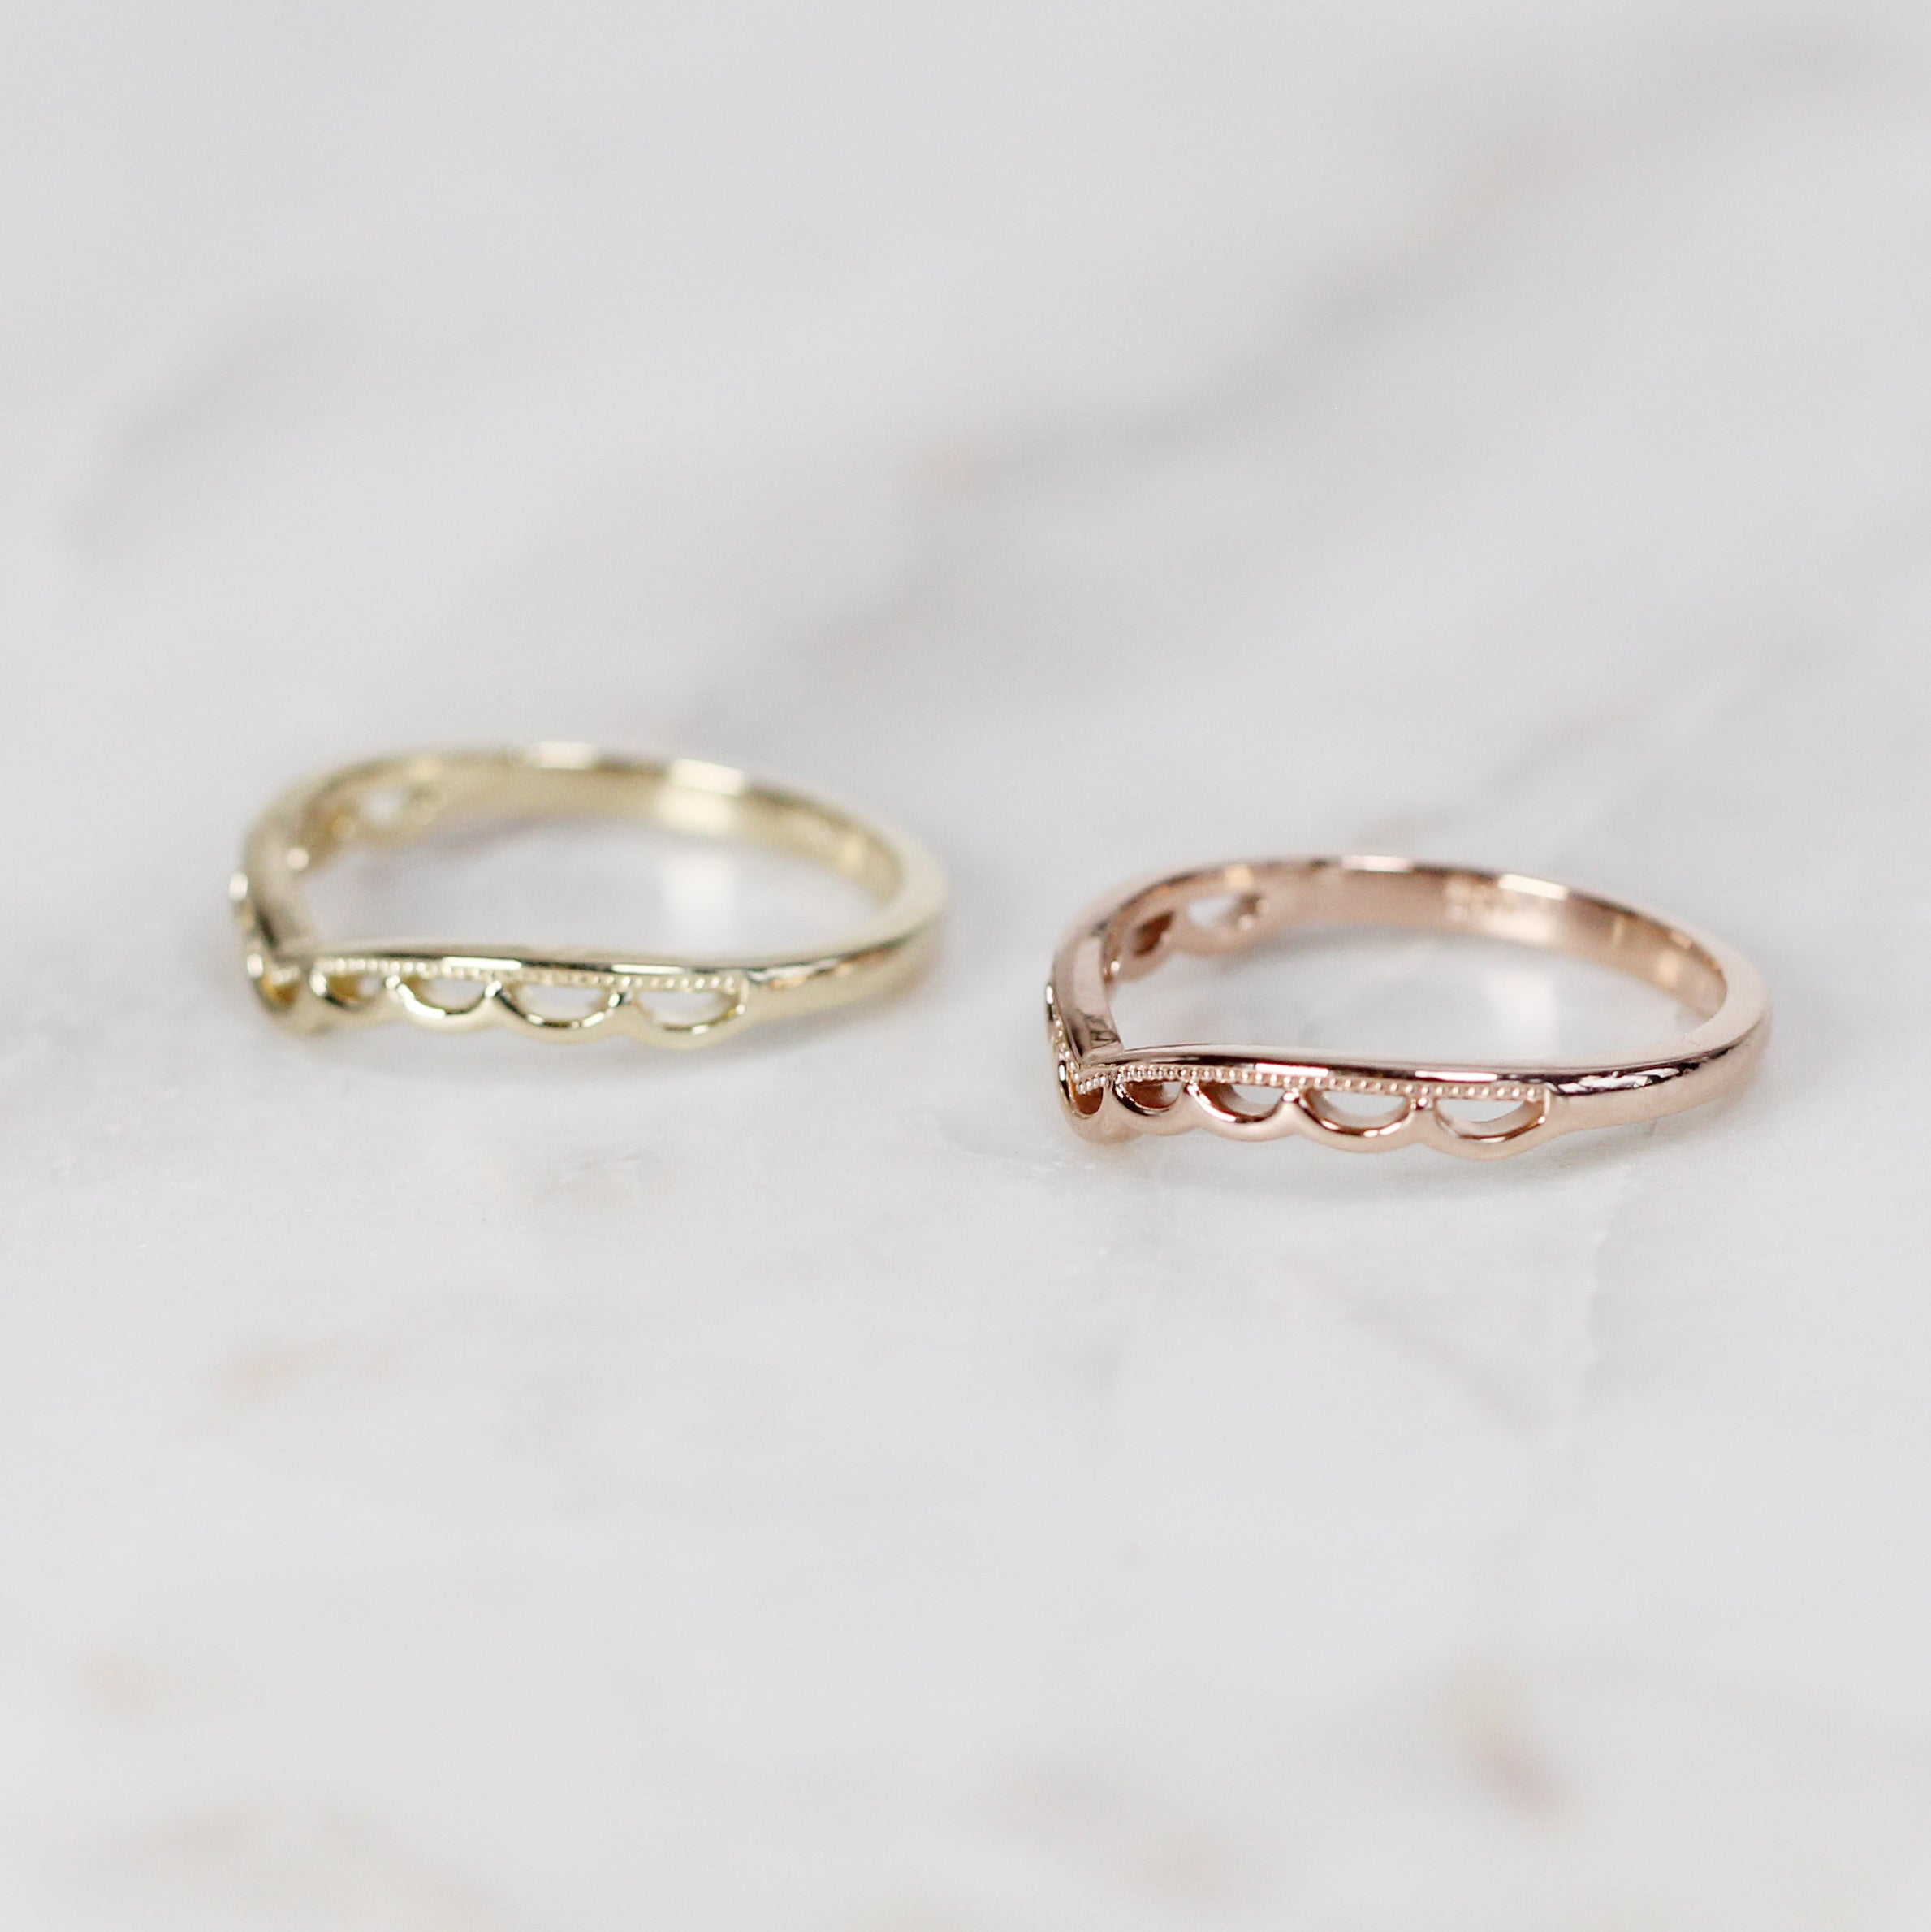 Juniper Lace Contour V Ring - Your Choice of 14k Gold - Salt & Pepper Celestial Diamond Engagement Rings and Wedding Bands  by Midwinter Co.